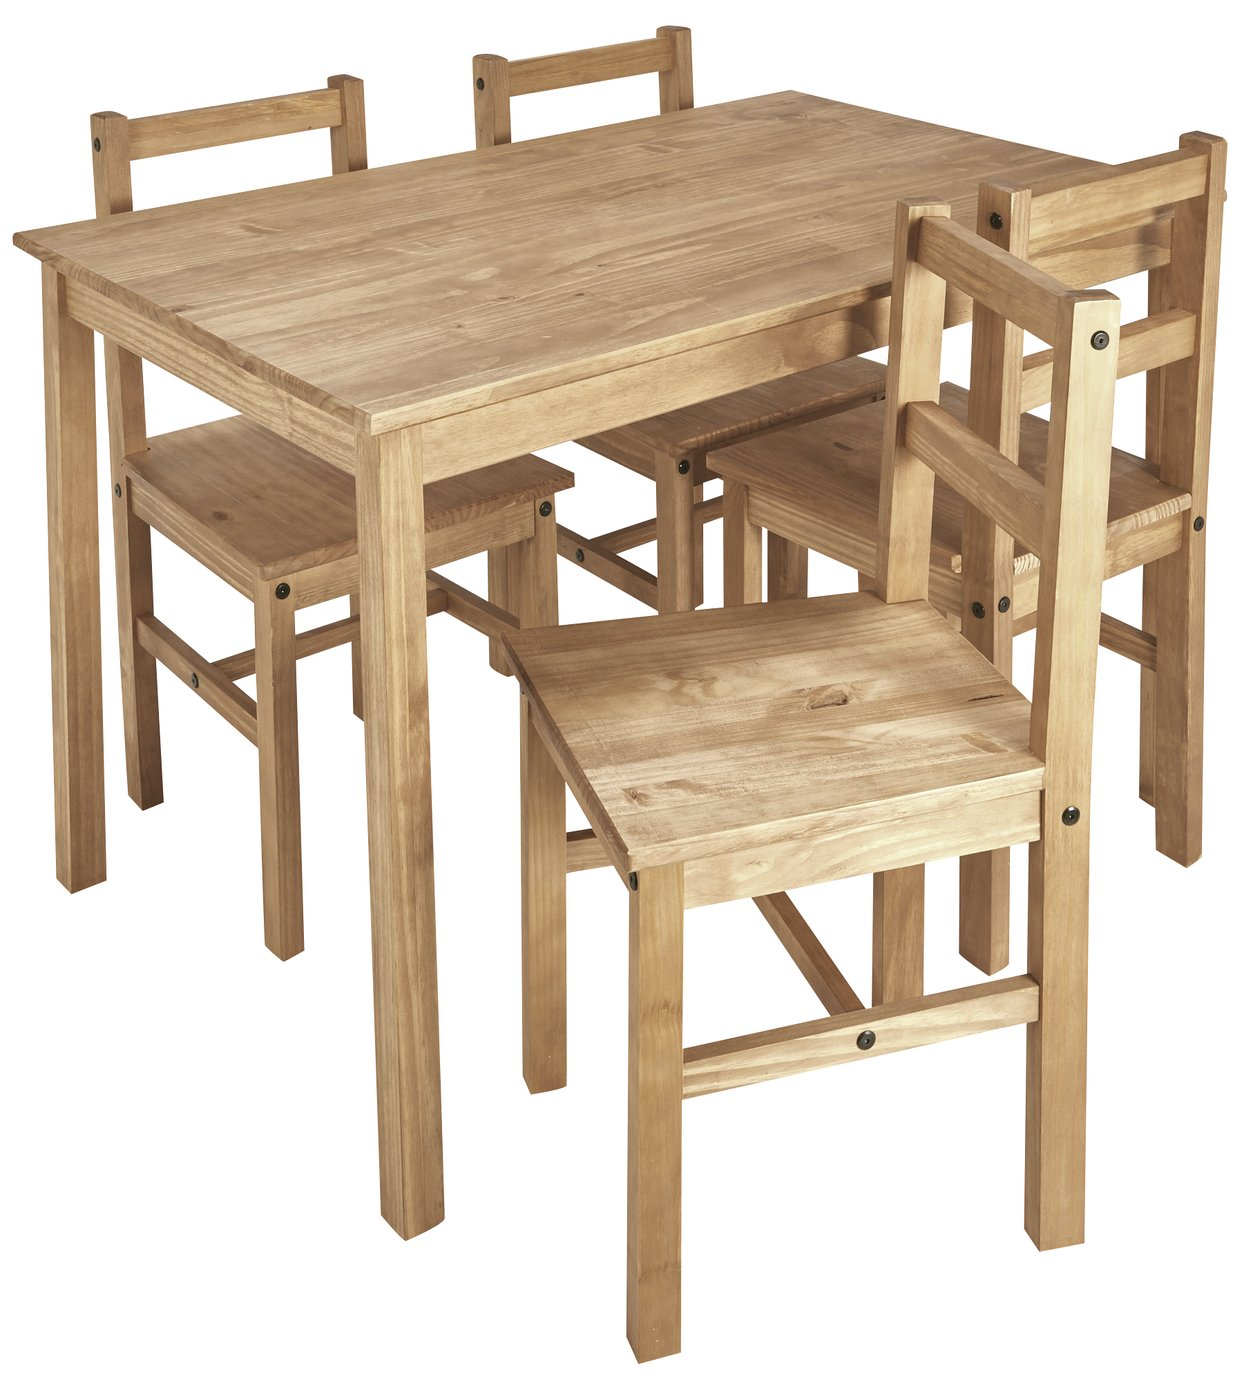 172 & Buy Argos Home Raye Solid Wood Dining Table \u0026 4 Chairs | Dining table and chair sets | Argos